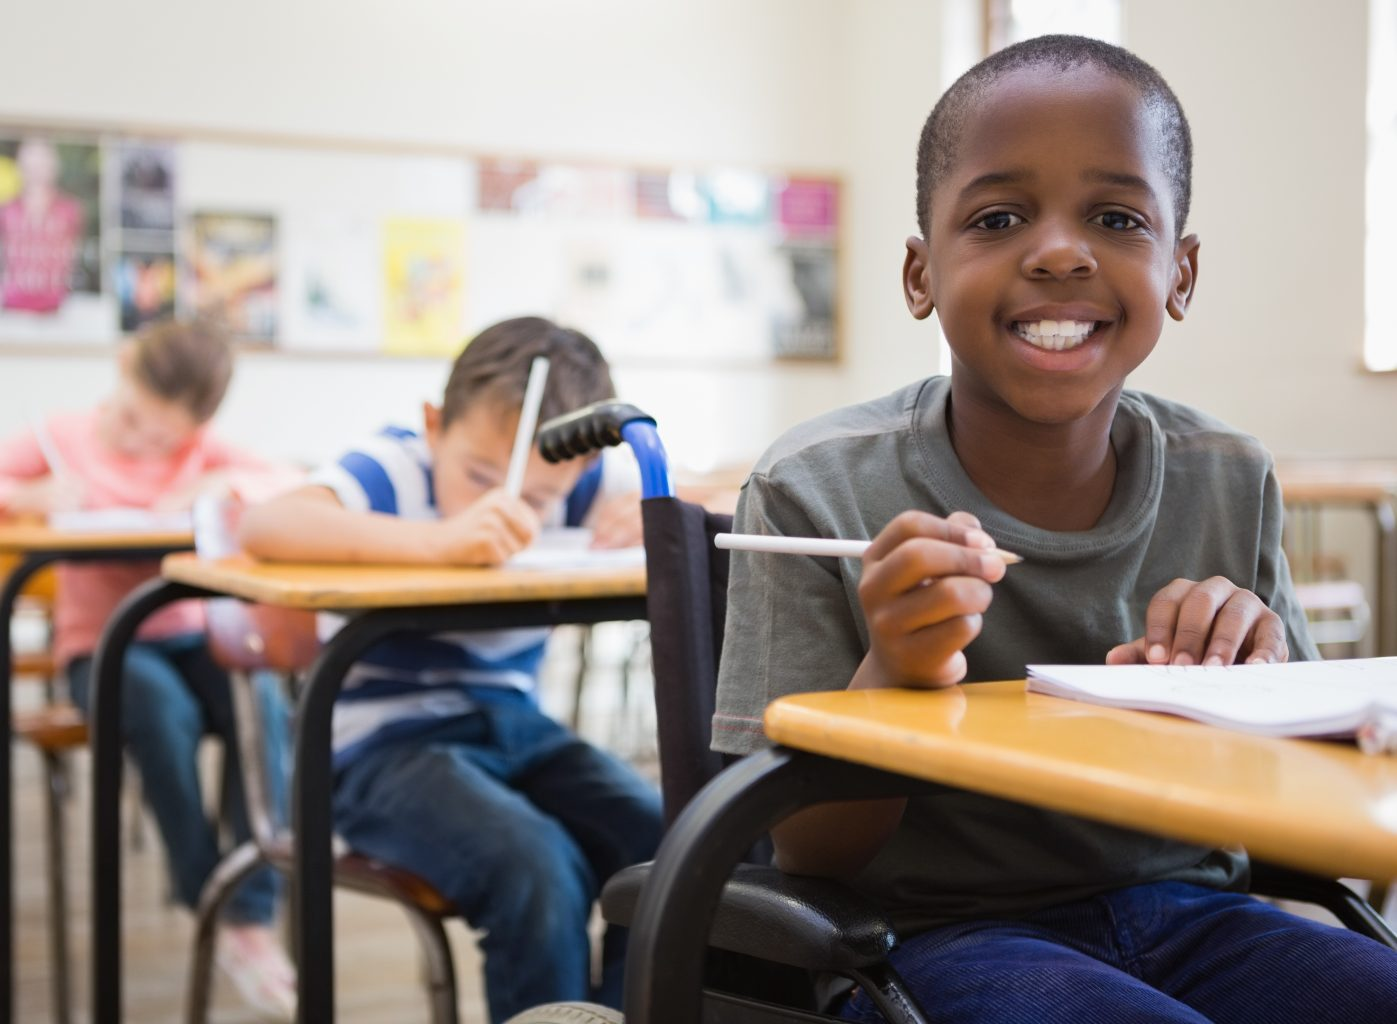 Saving up for a special needs child's future